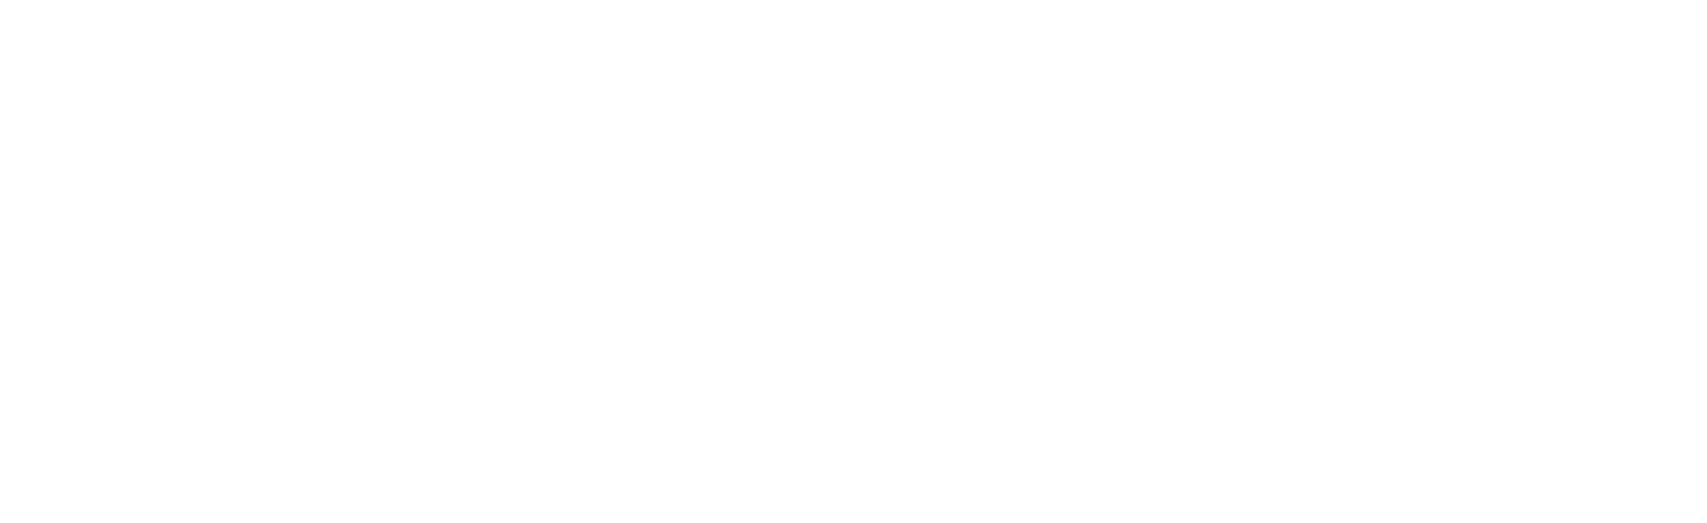 소더비 국제 부동산의 큐레이트(Curate by Sotheby's International Realty(sm)) Logo